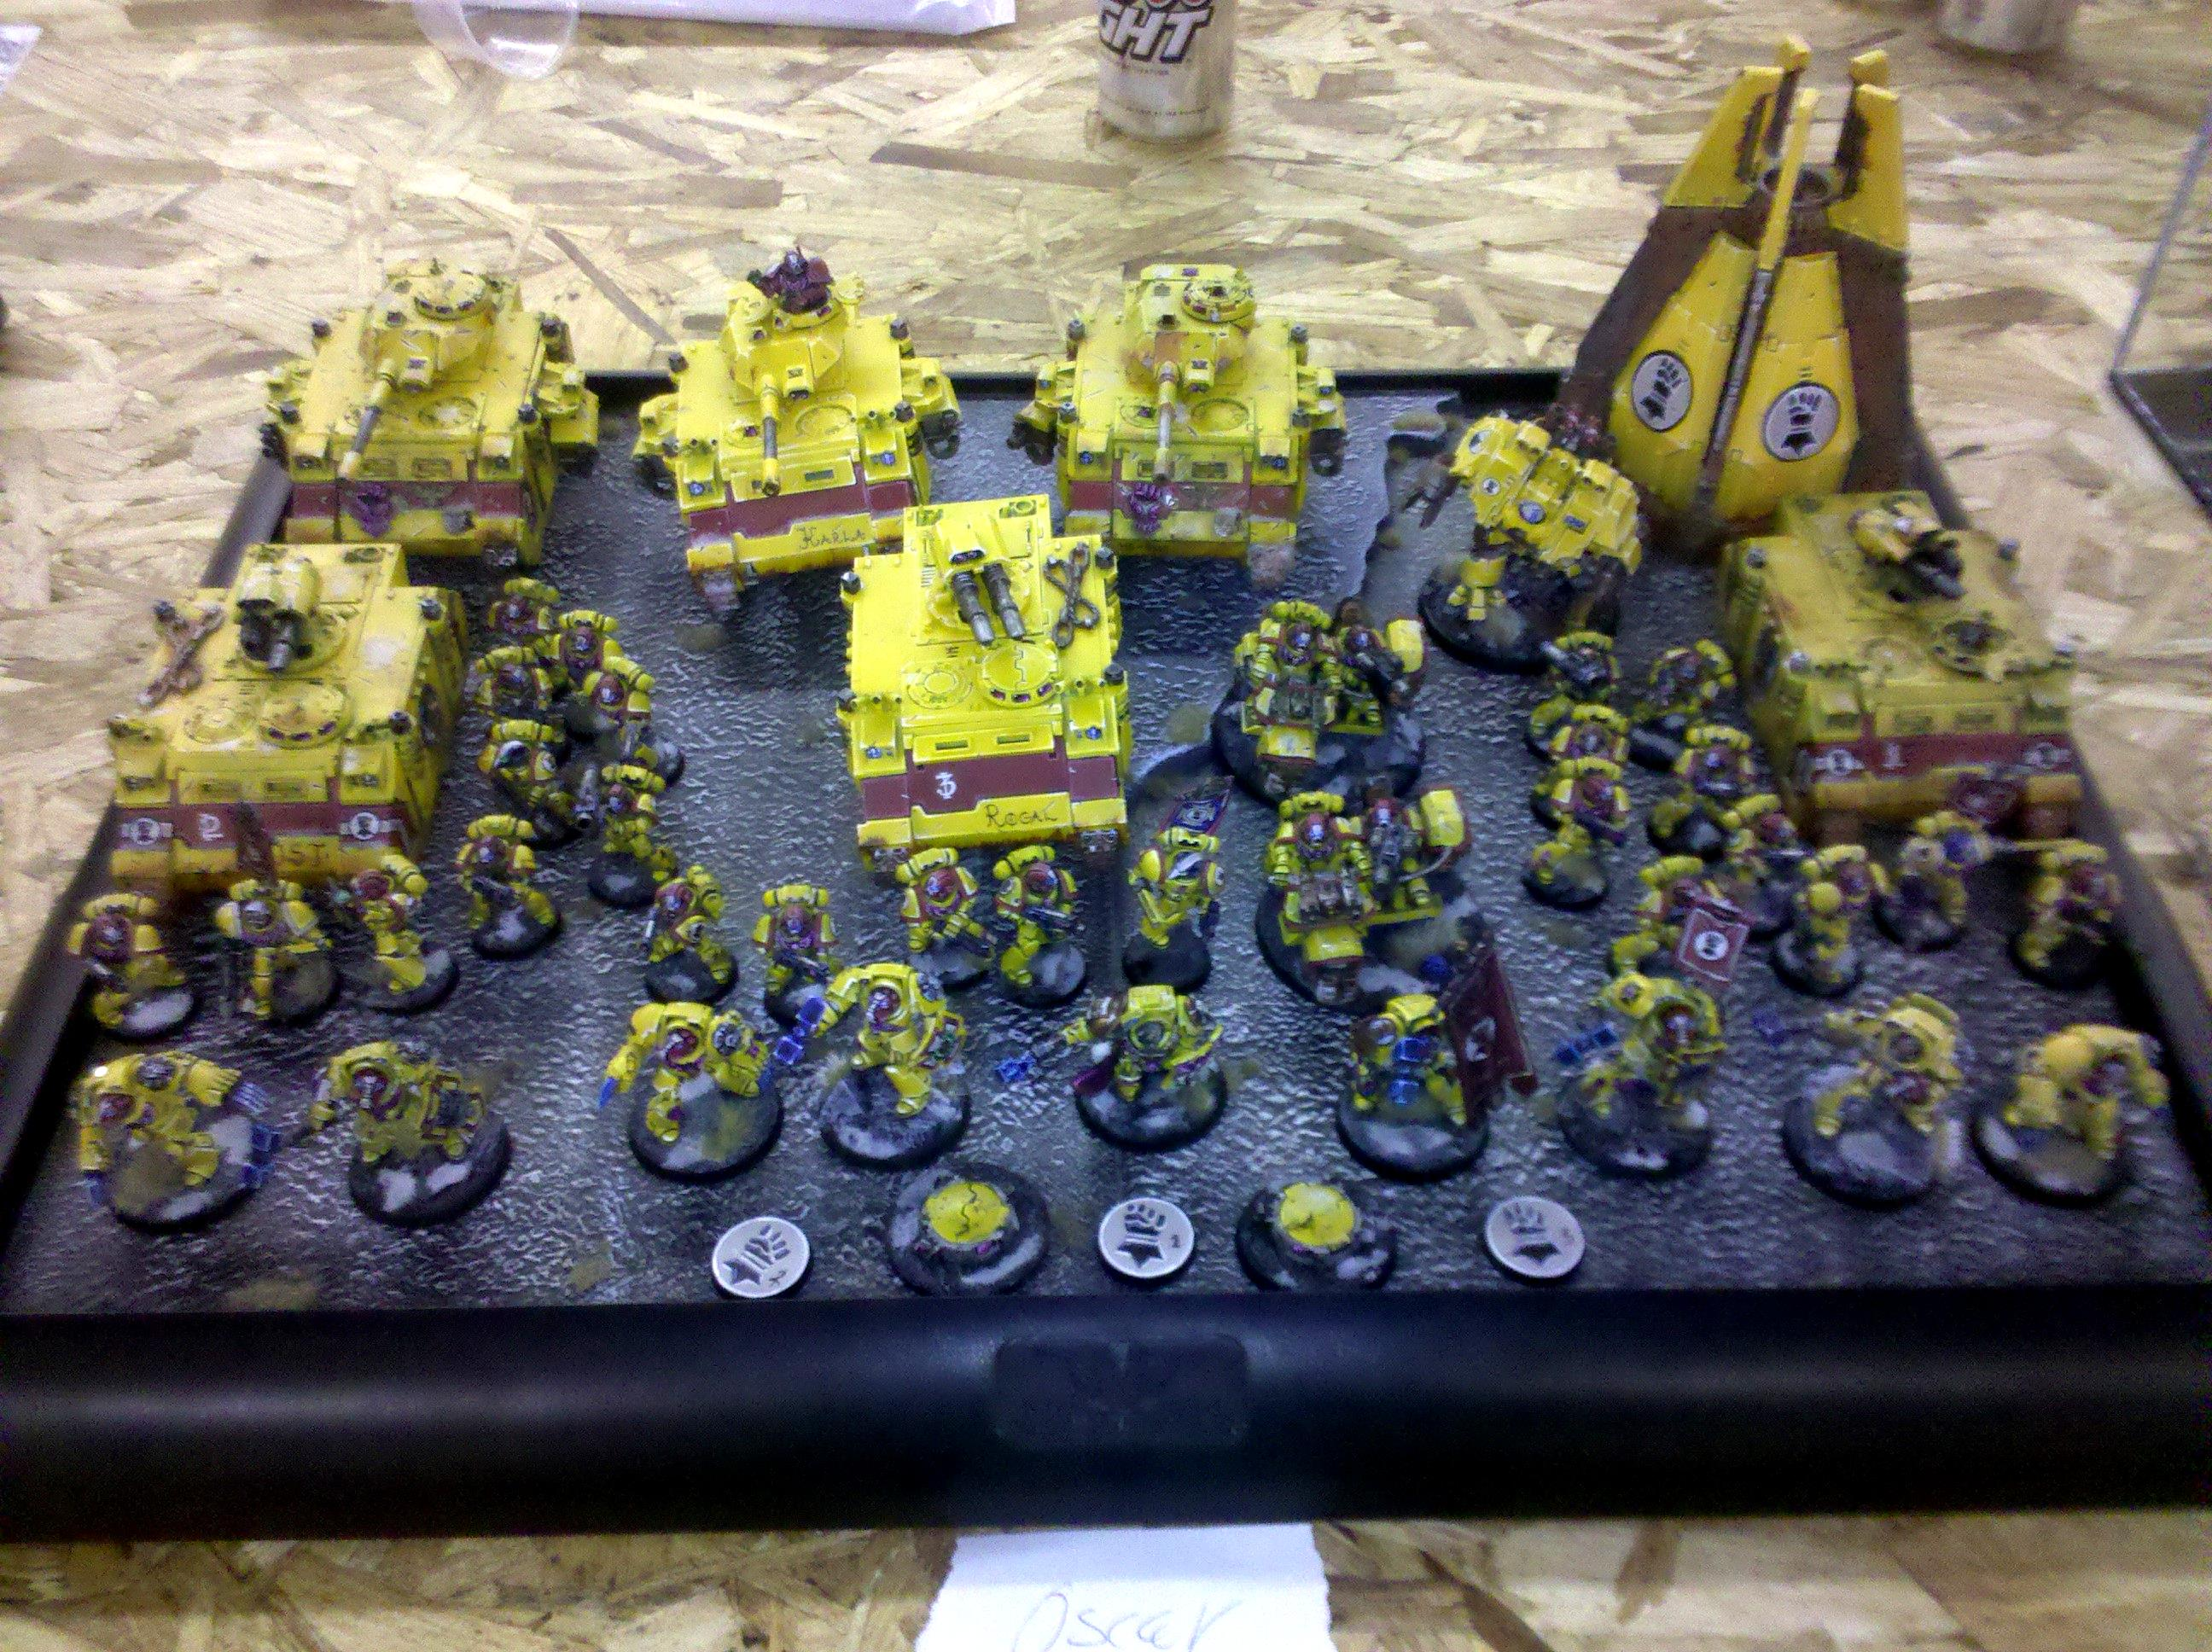 Imperial Fists, Oscar's Imperial fists